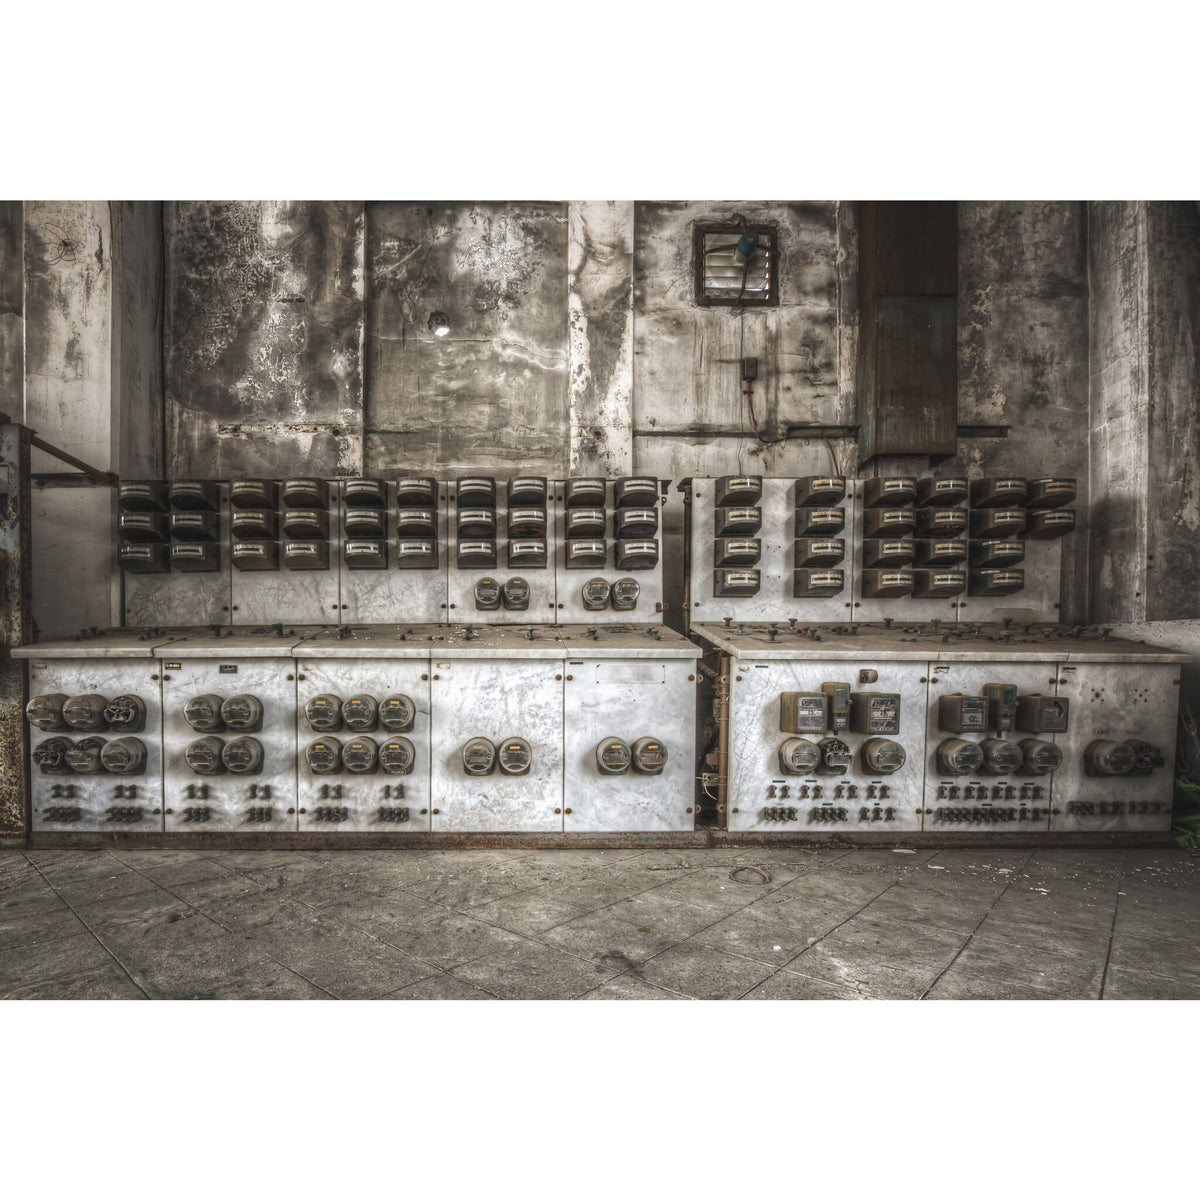 Switchboard | Shimizusawa Thermal Power Plant Fine Art Print - Lost Collective Shop